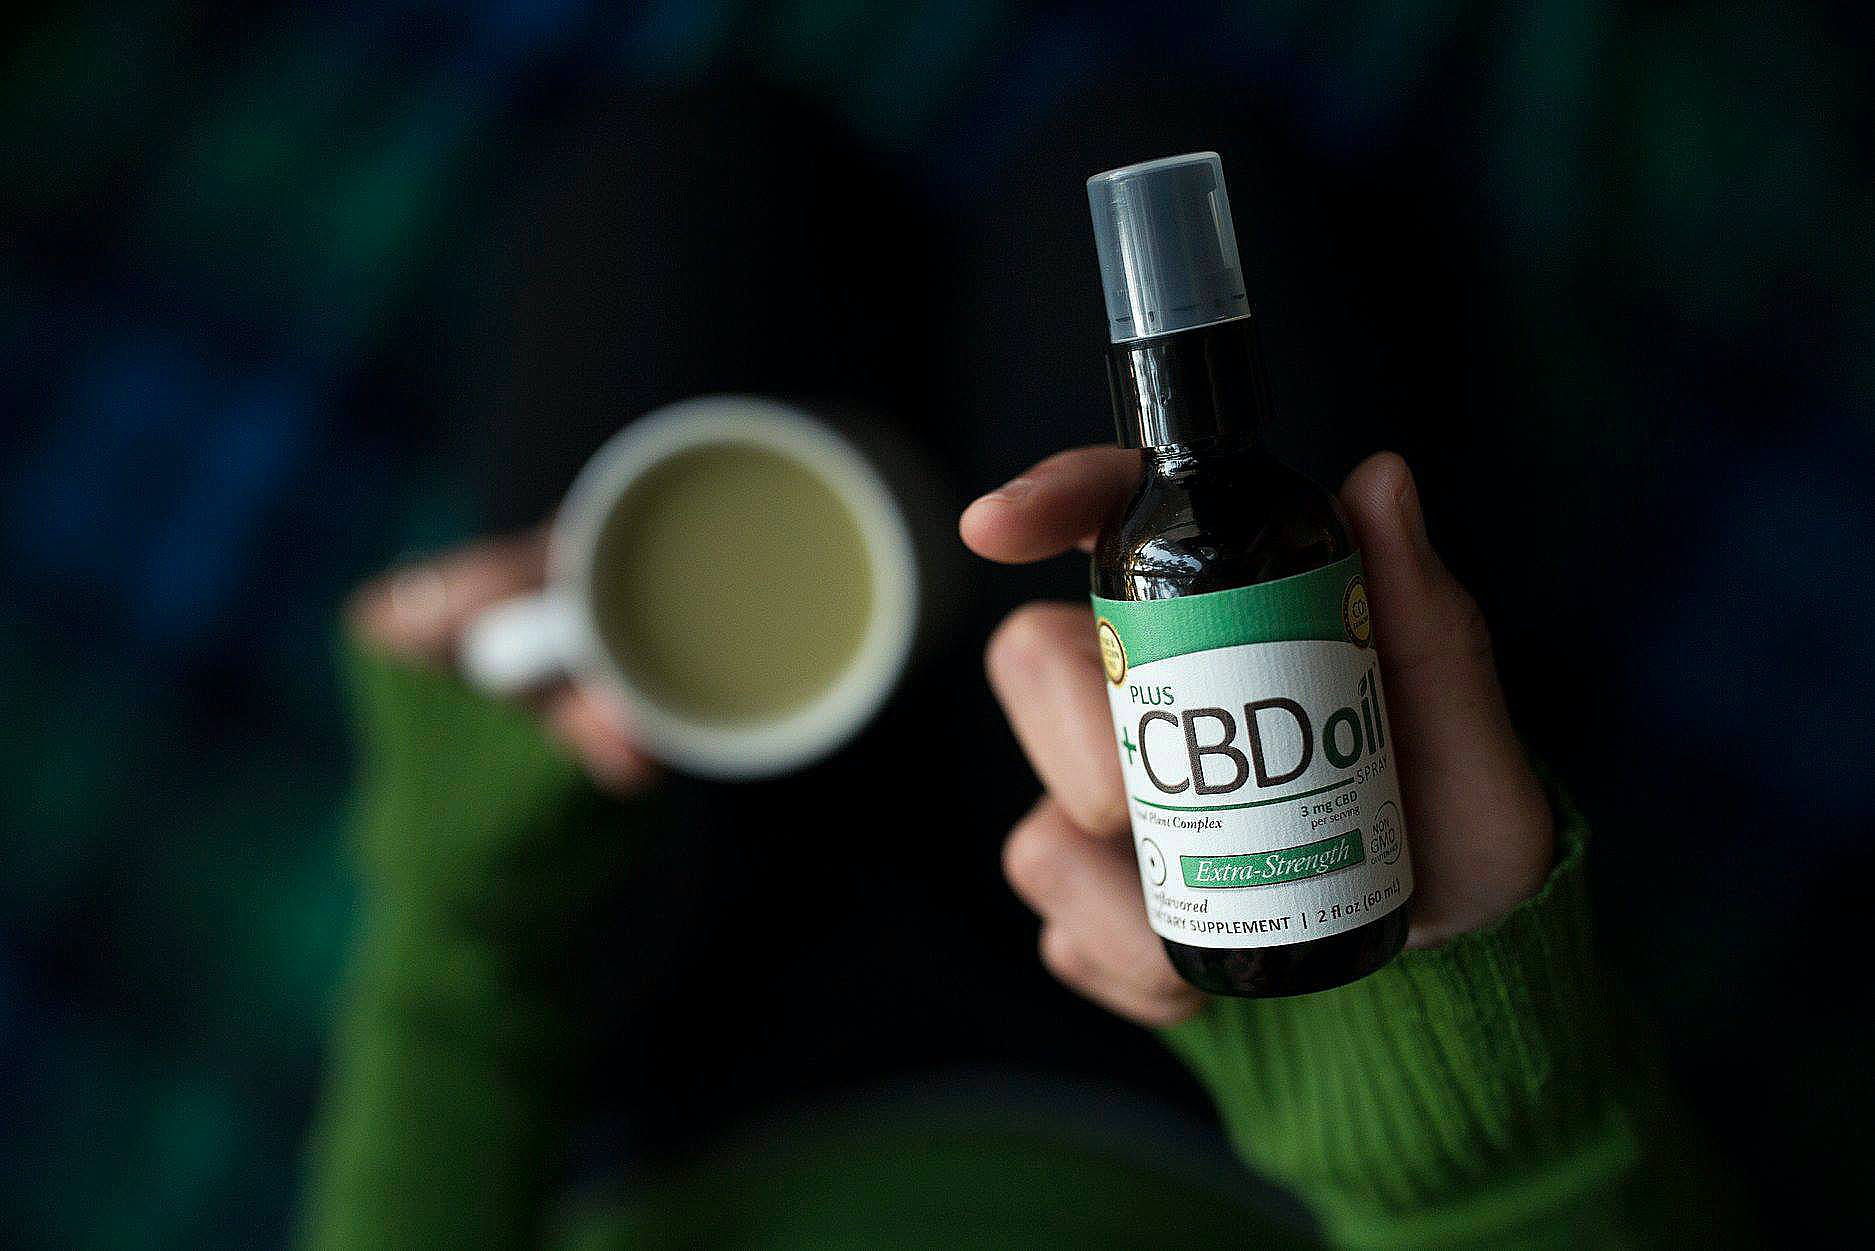 CBDoil The 5 best products for outdoor smoking sessions